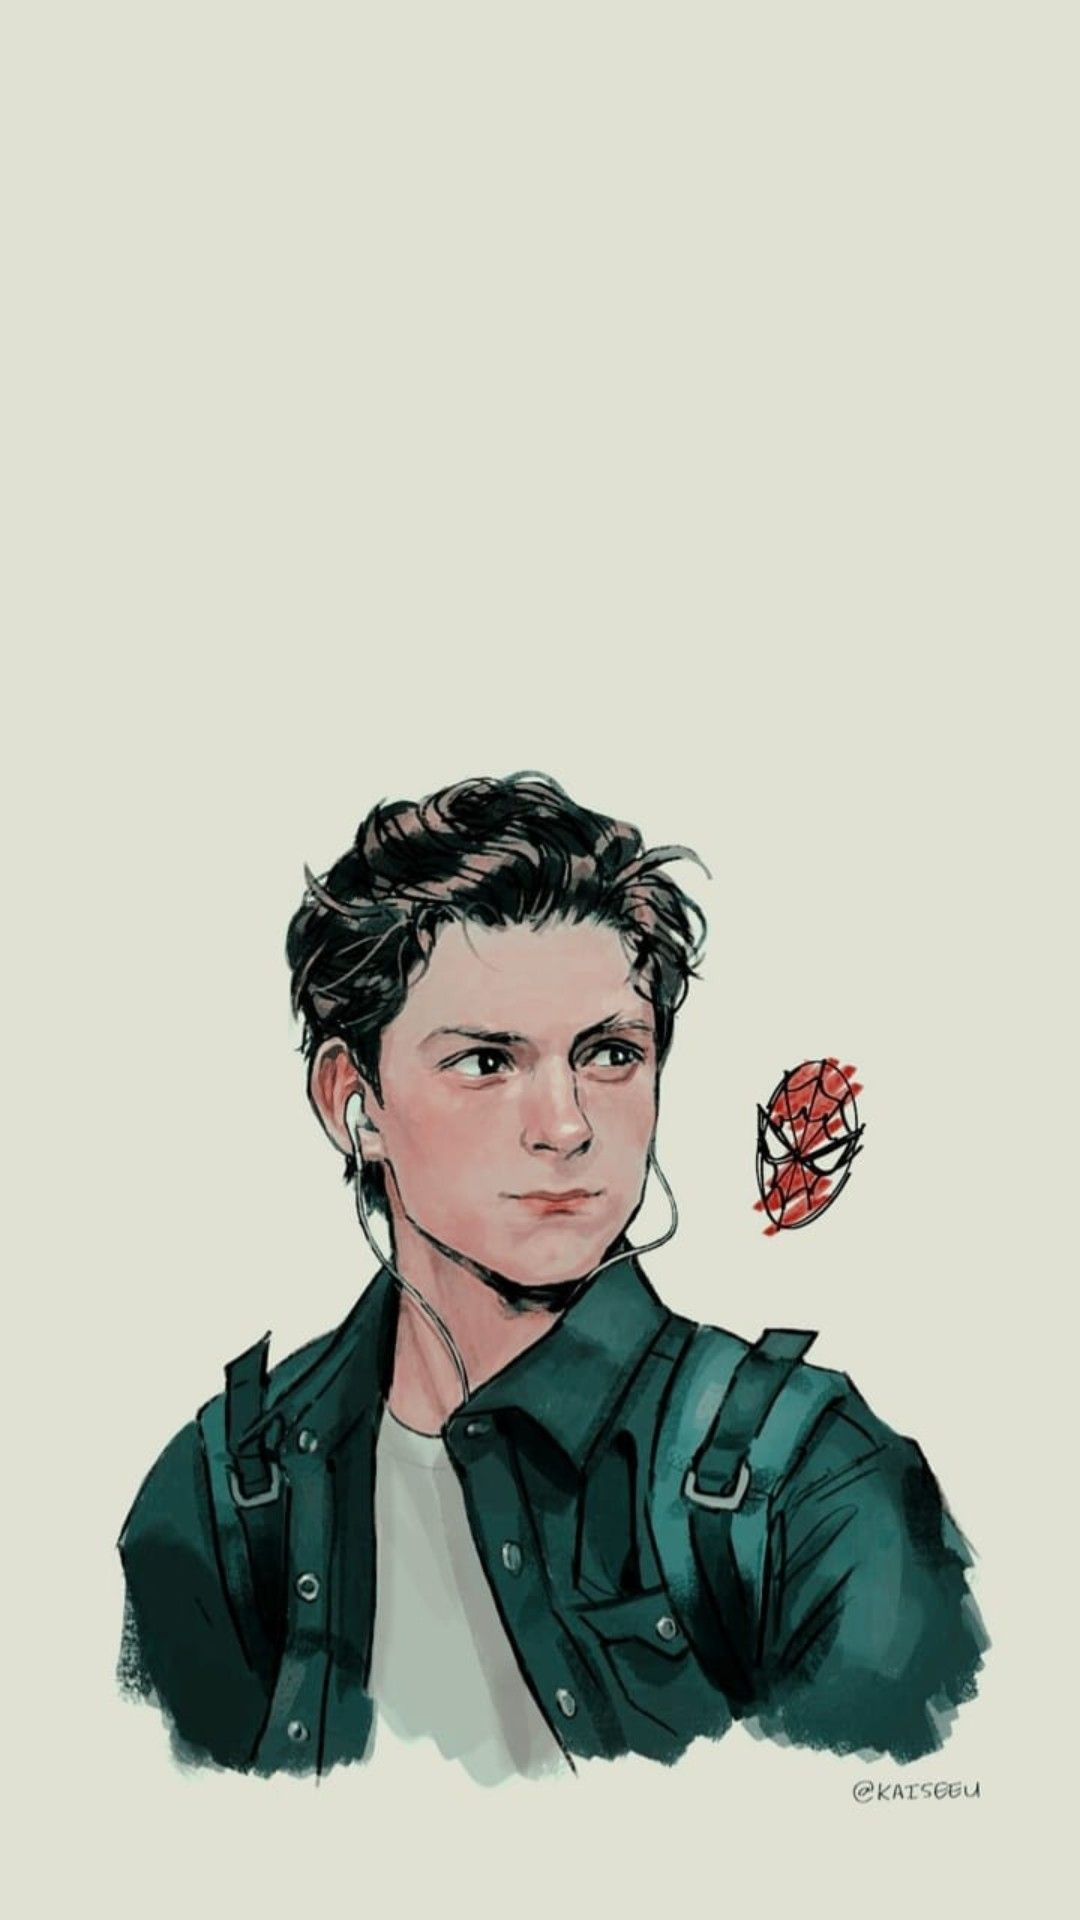 Spider Man Wallpaper Peter Parker Wallpaper Tom Holland Spiderman Marvel Drawings Spiderman Art